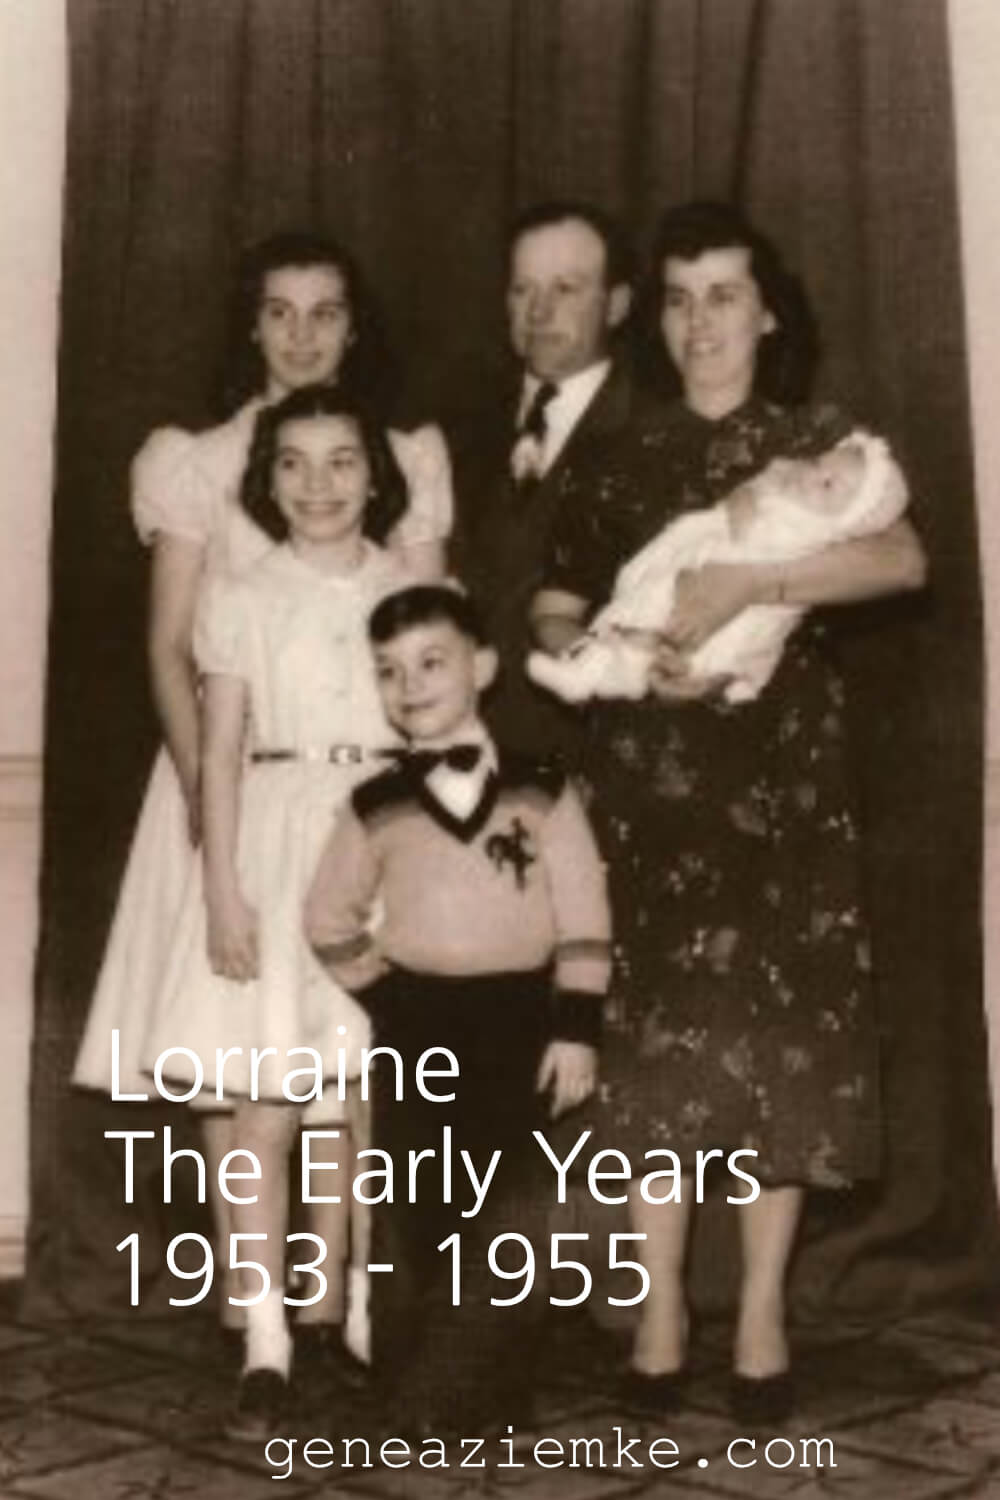 Lorraine - The Early Years - 1953-1955